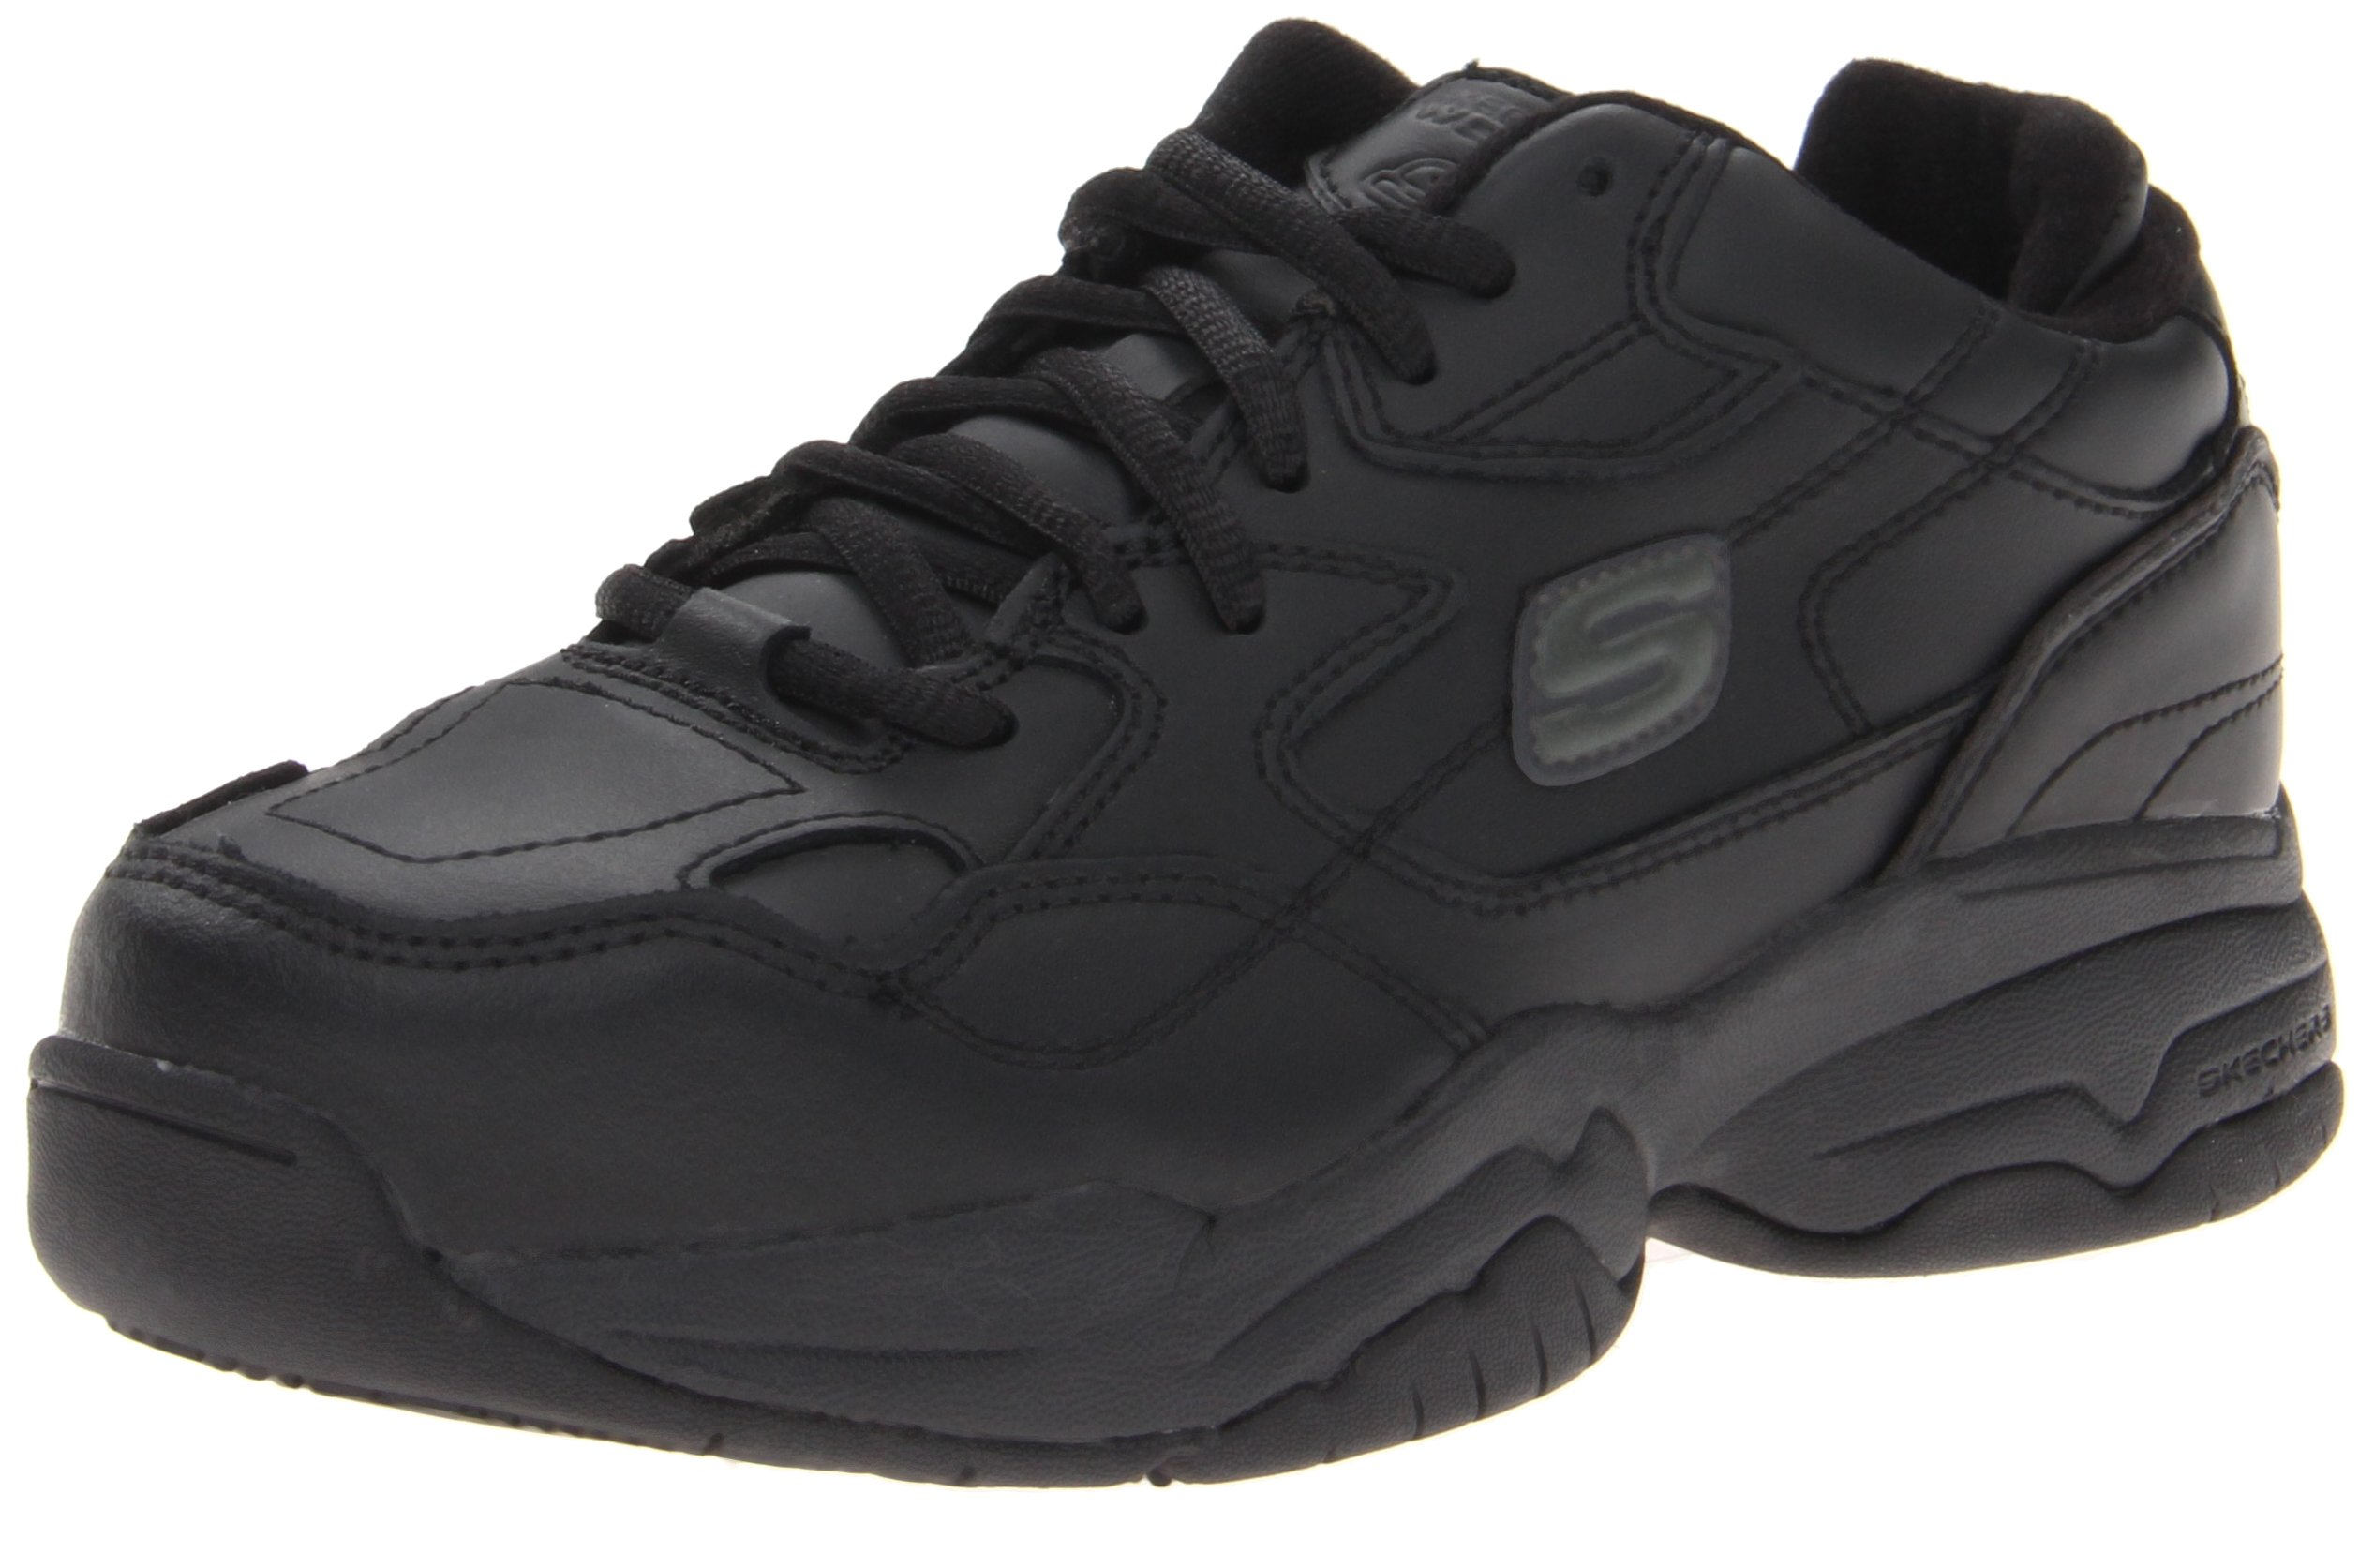 Skechers for Work Women's Felix Doozer Work Shoe